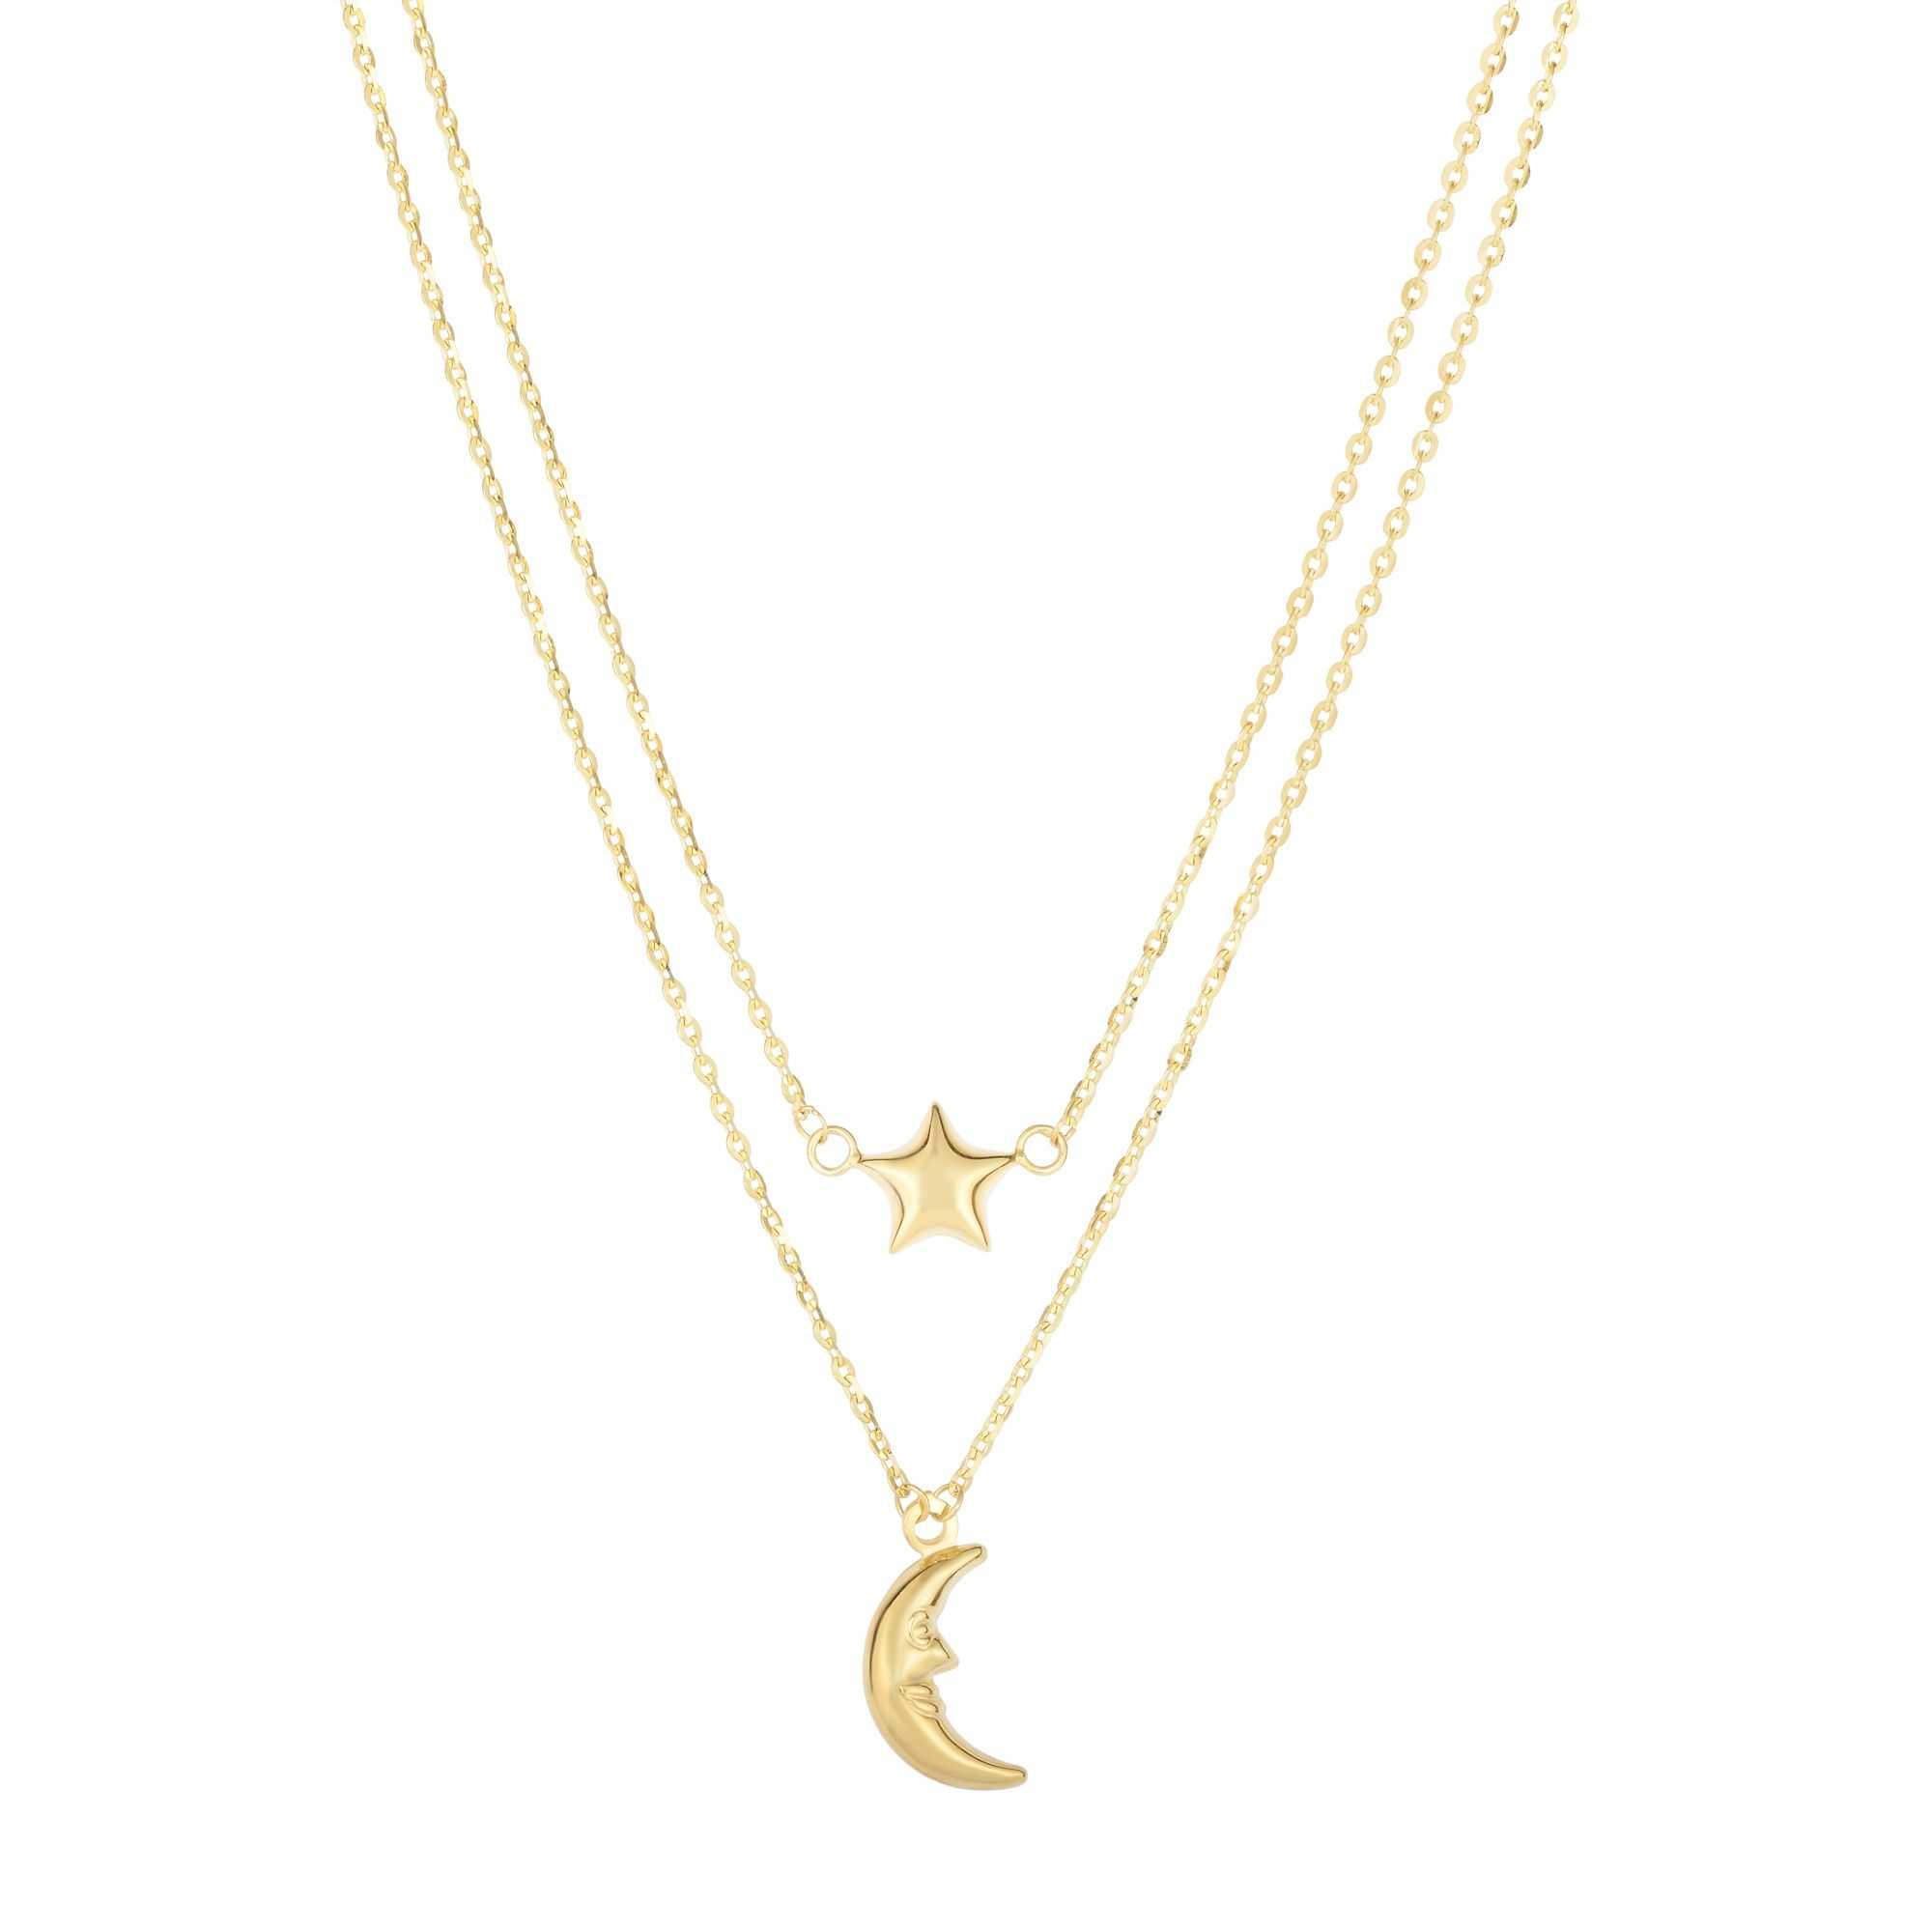 14 Karat Yellow Gold Layered Moon and Star Necklace